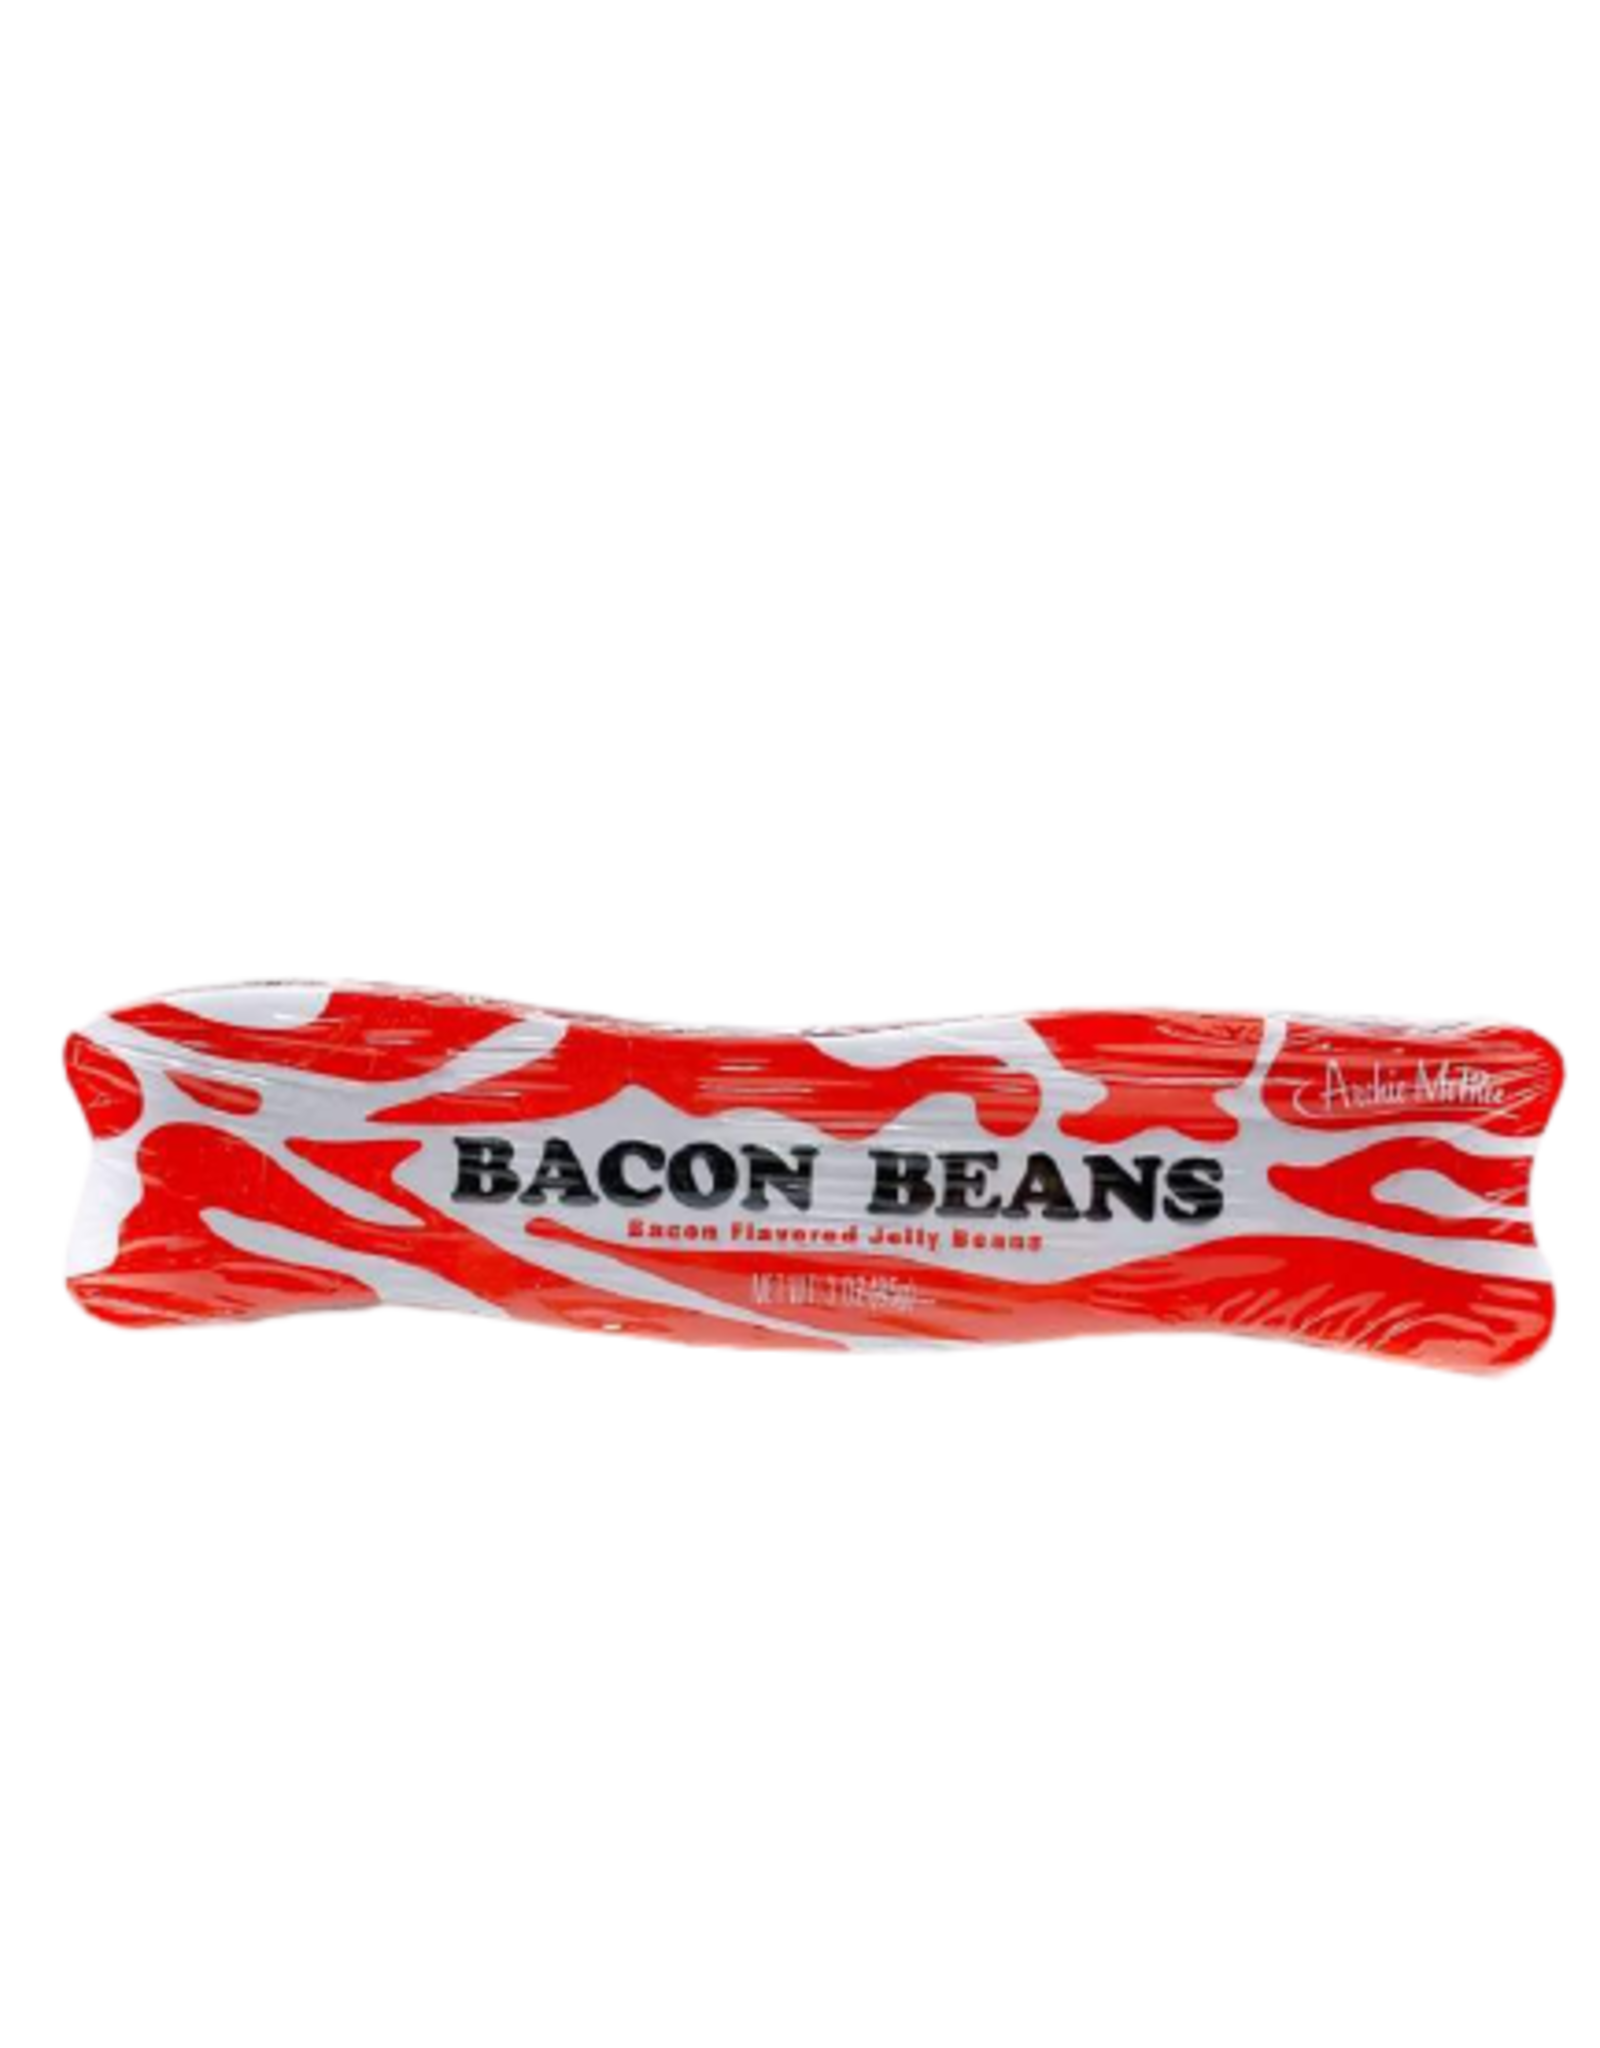 Bacon Beans - Bacon Flavoured Jelly Beans